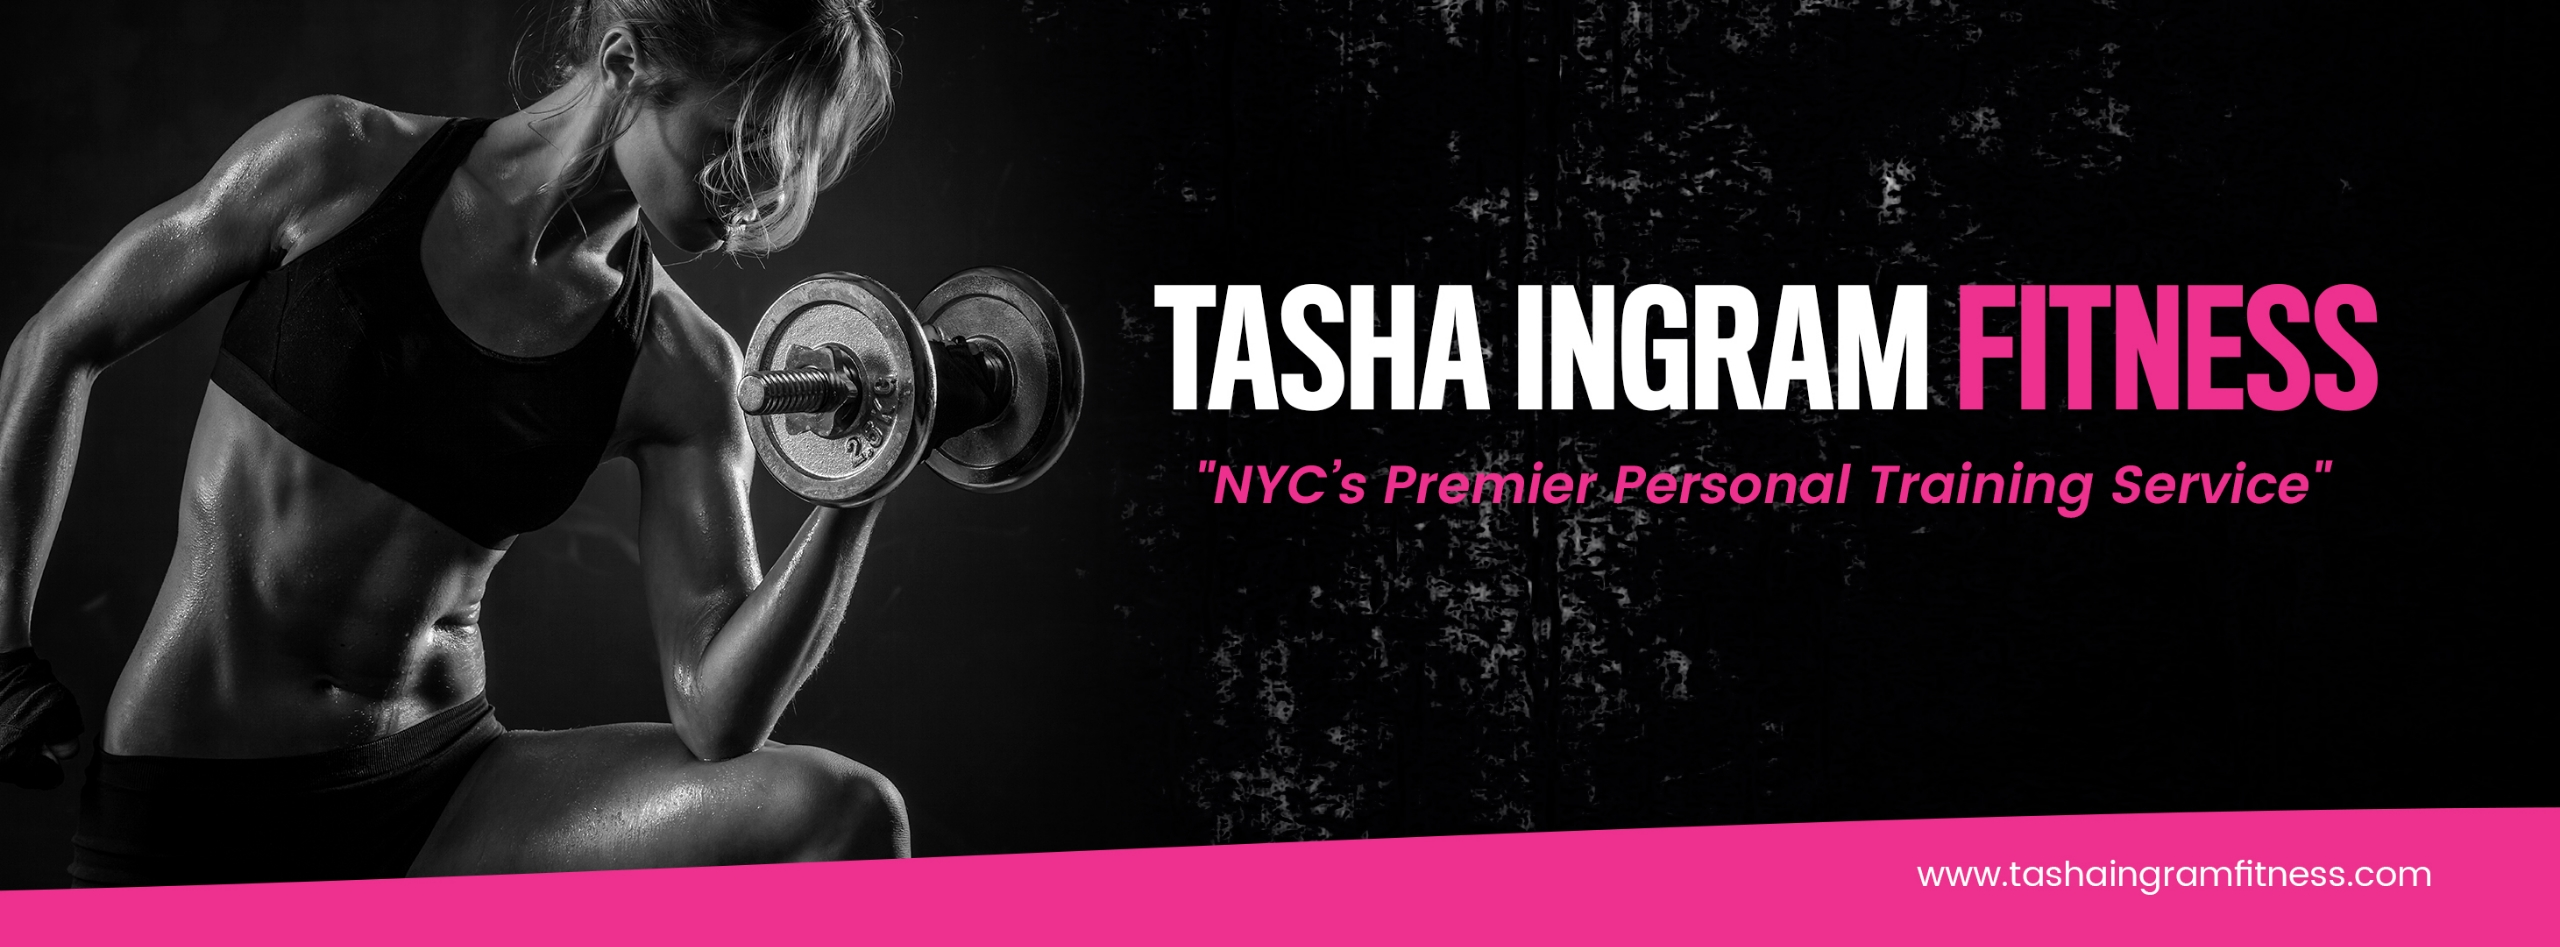 Tasha Ingram Fitness (@tashaingramfitness) Cover Image